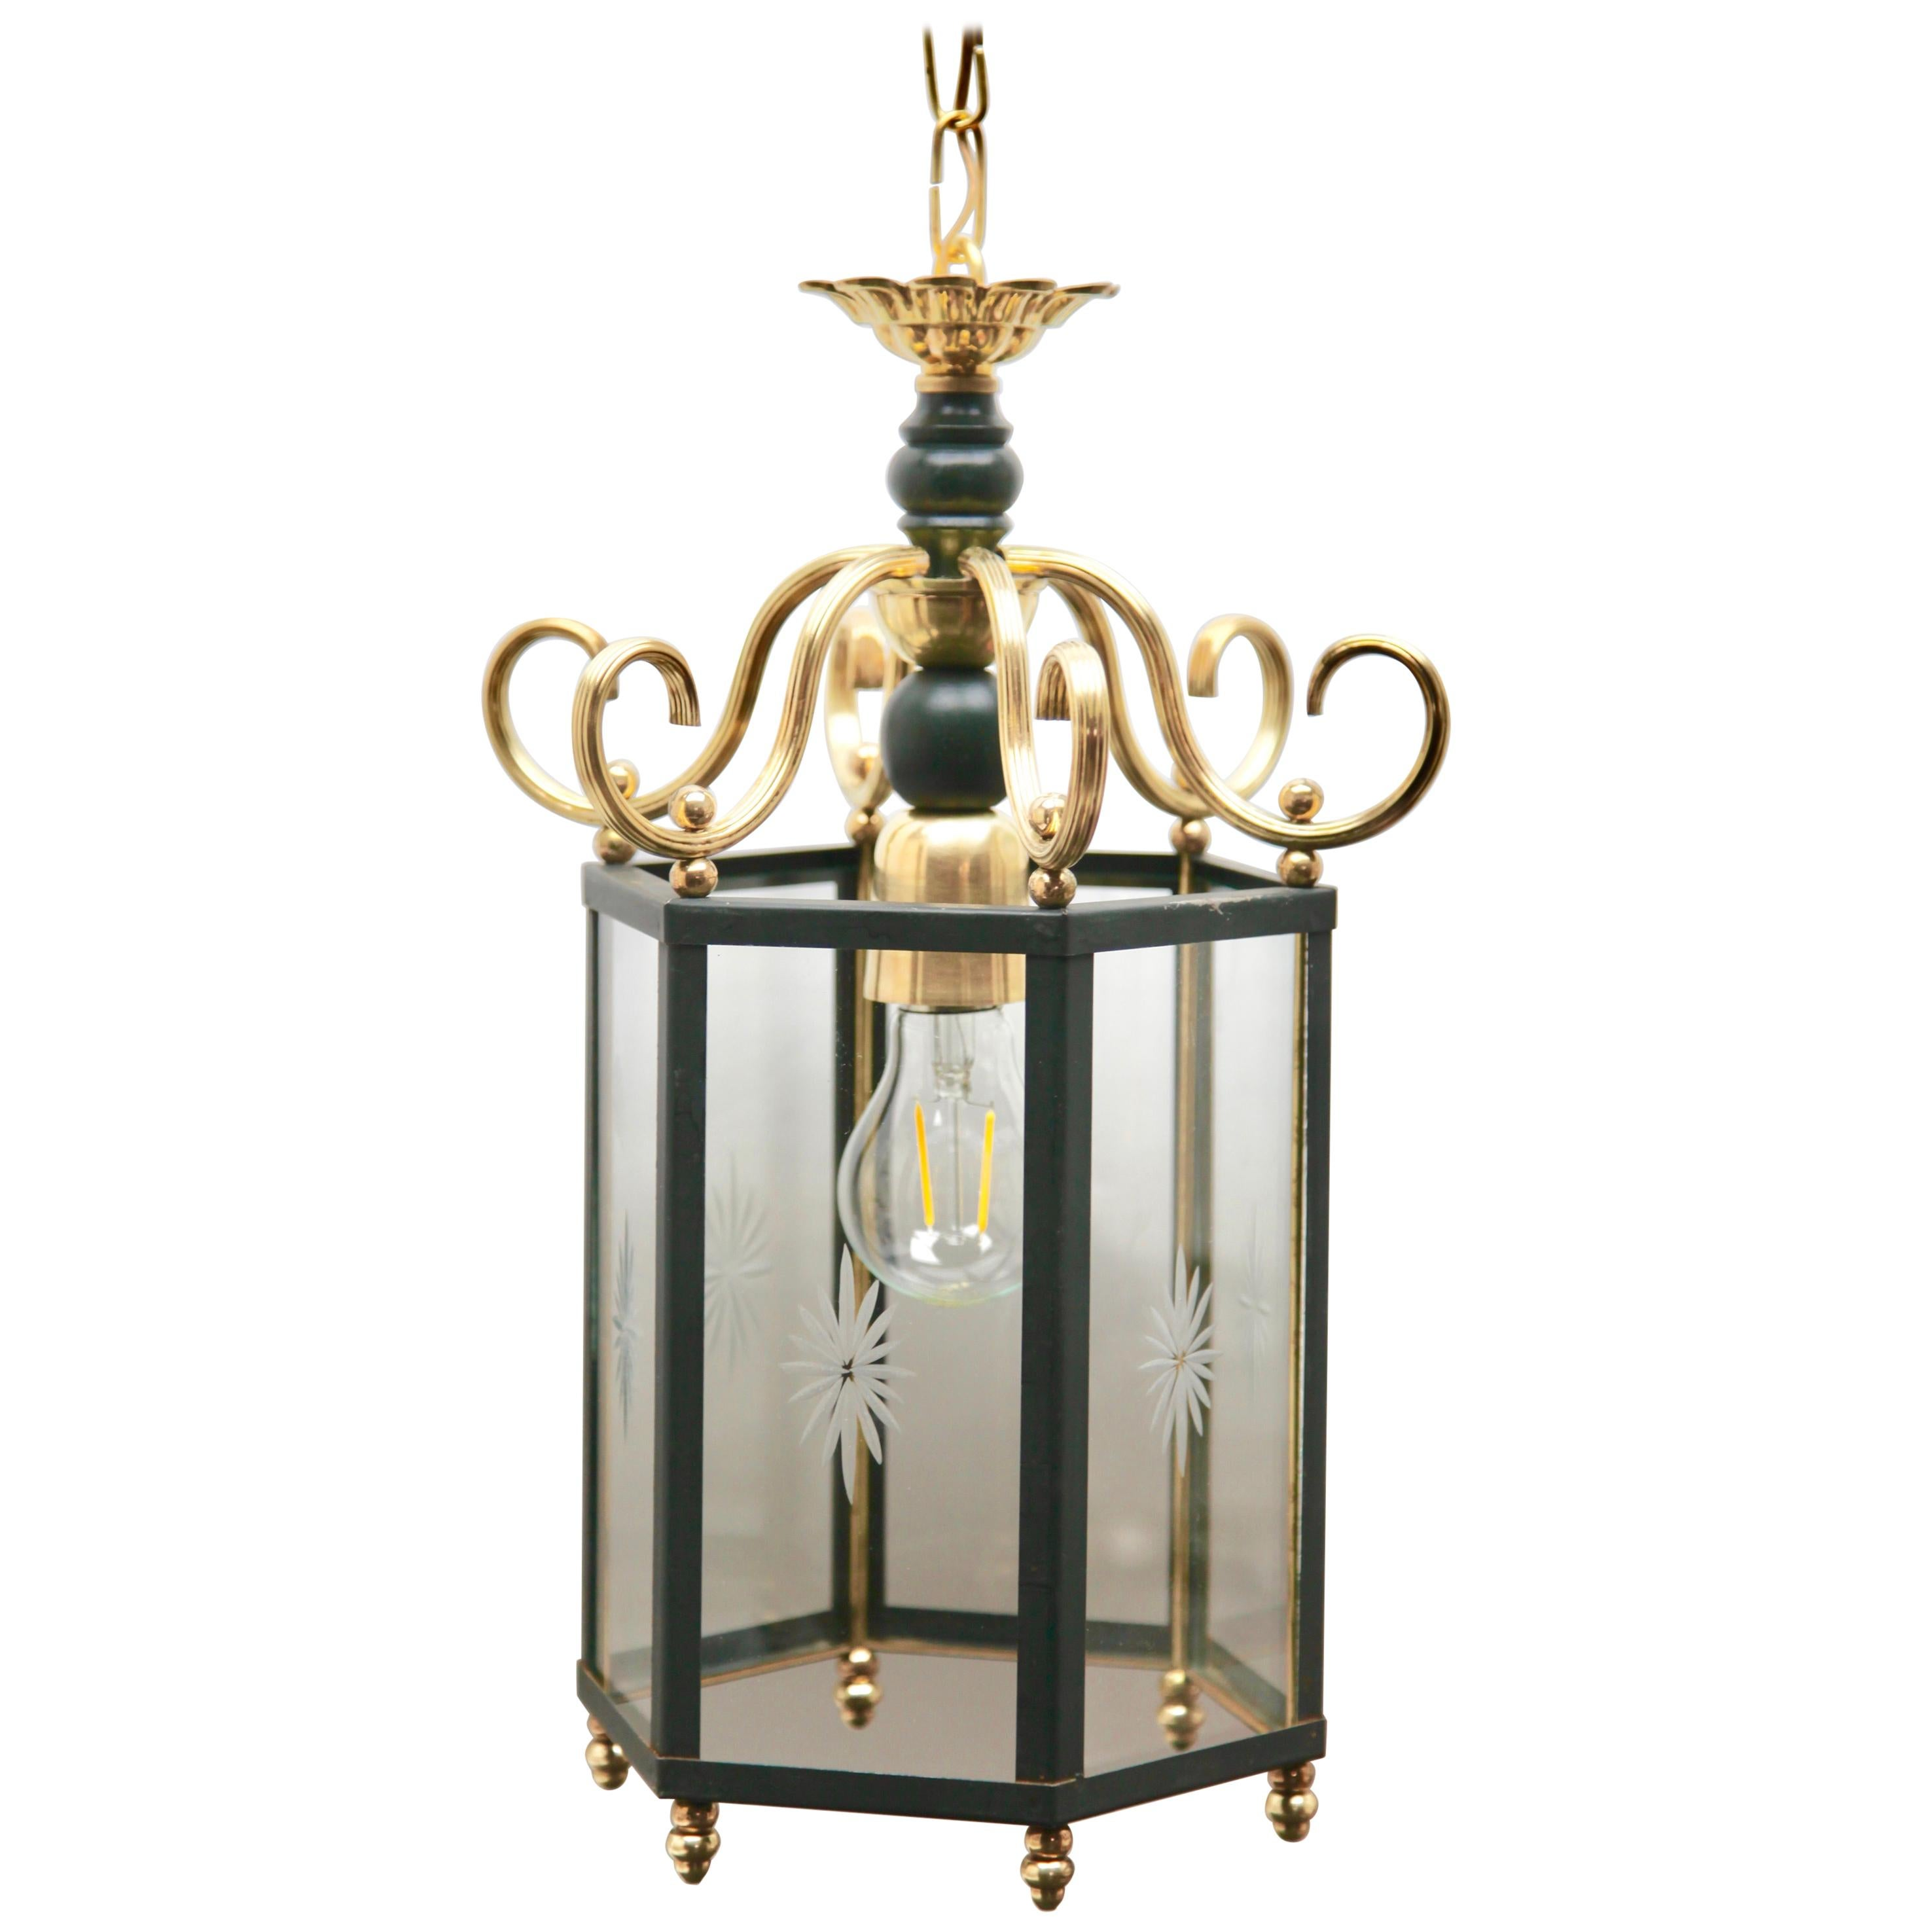 Brass and Etched with a Starburst Pattern Glass Lantern Hall Light